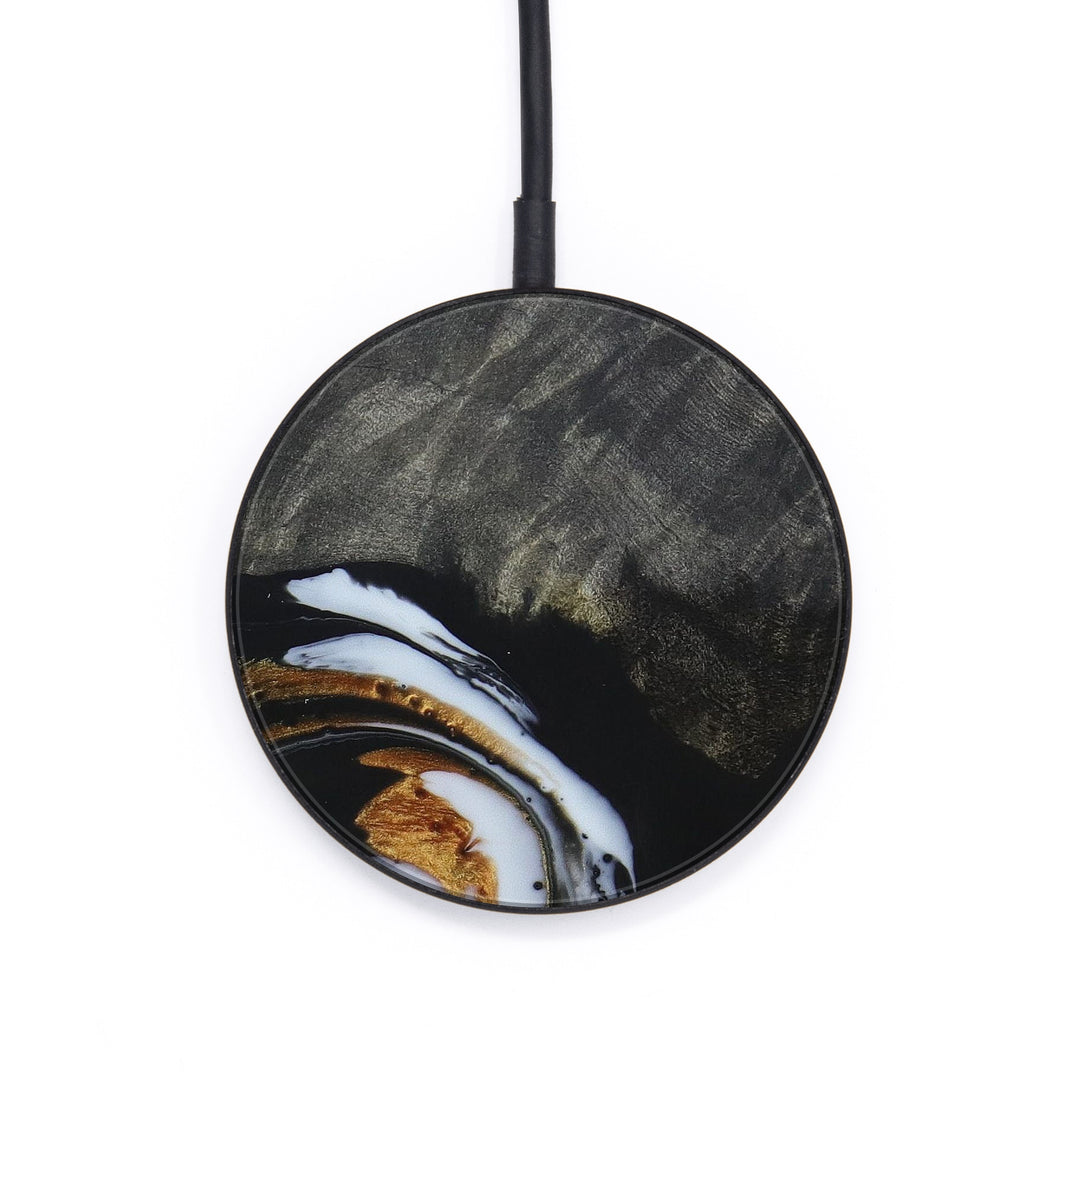 Circle Wood+Resin Wireless Charger - Blinni (Black & White, 404480)